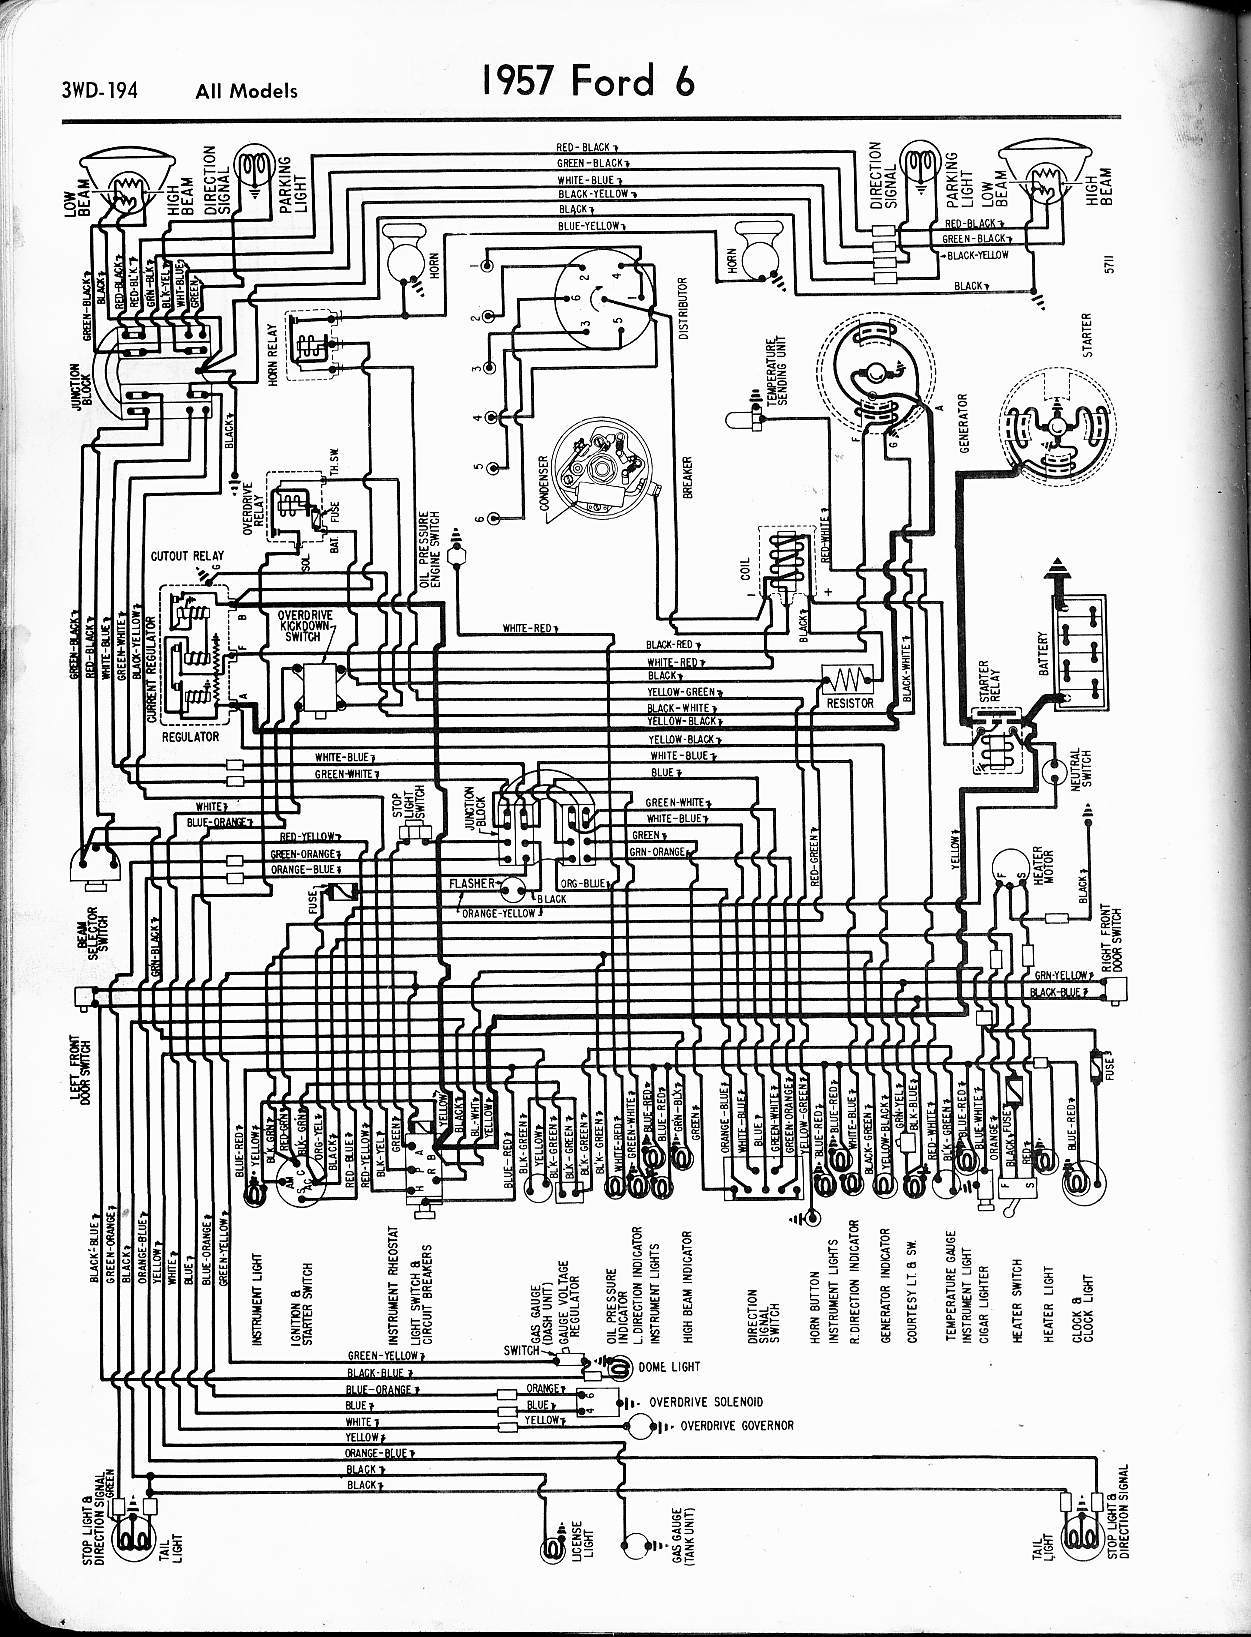 80 2010_07_23_013626_1957_ford_wiring_451fe1d3aafe571893763e4bcbb92521b2870e9d 1957 ford truck wiring diagram ford truck enthusiasts forums ford truck wiring diagrams at nearapp.co